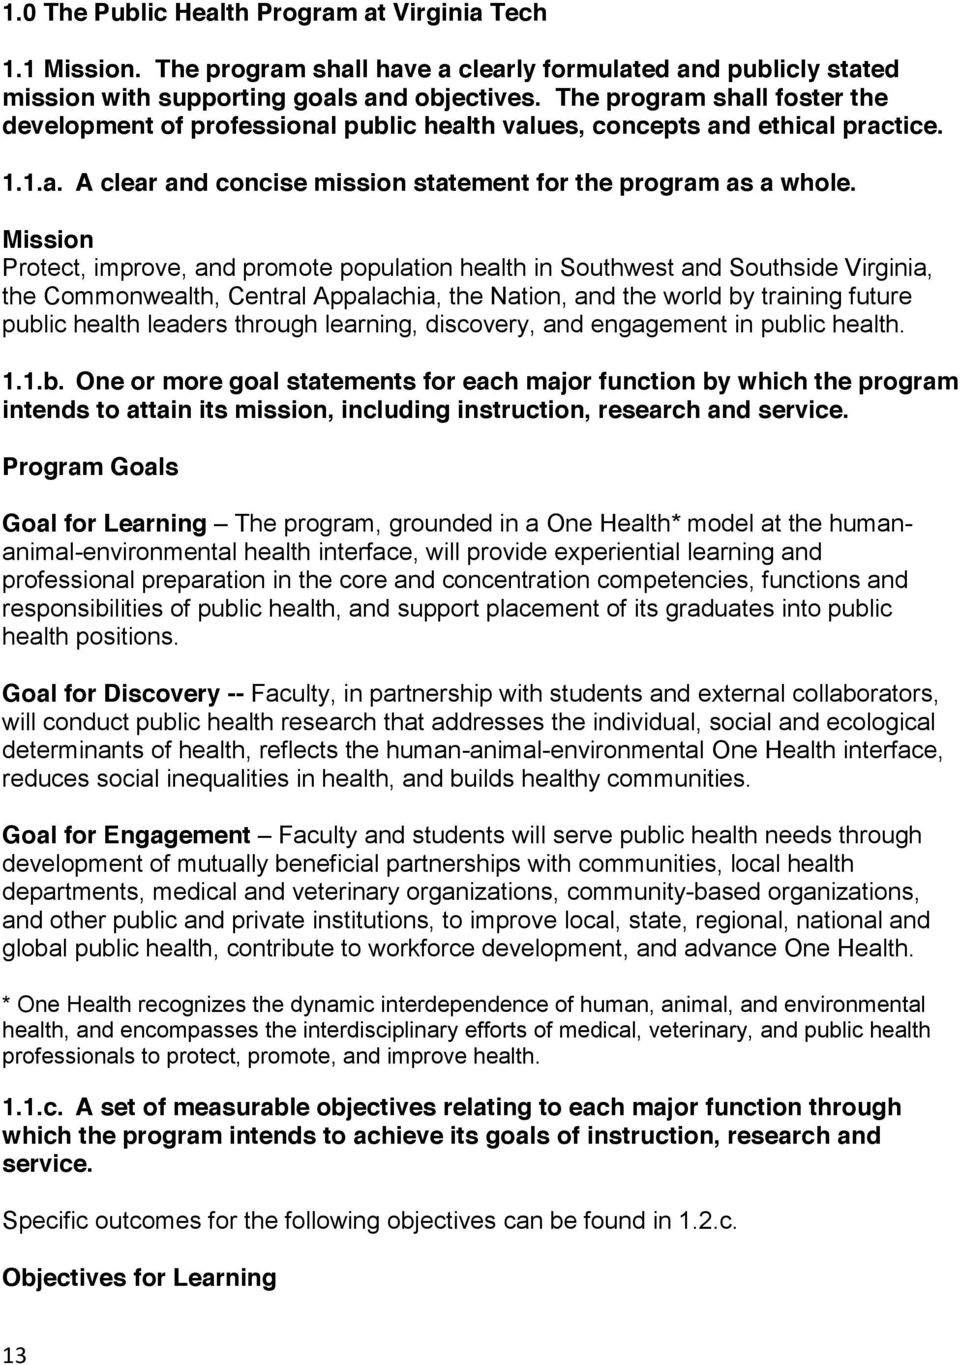 Mission Protect, improve, and promote population health in Southwest and Southside Virginia, the Commonwealth, Central Appalachia, the Nation, and the world by training future public health leaders